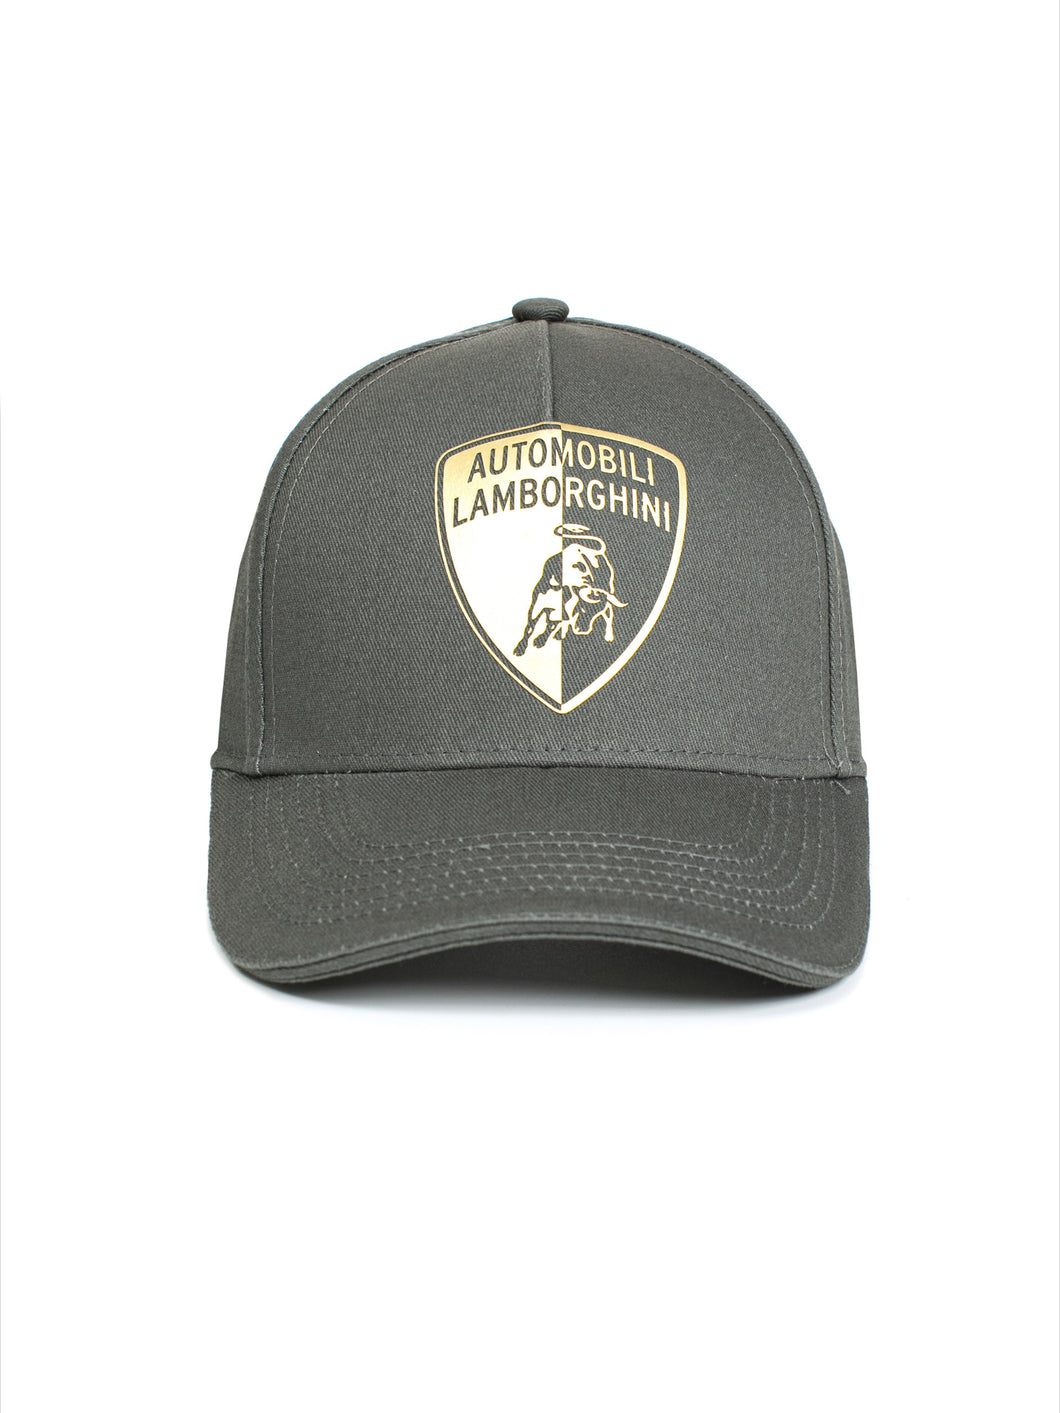 Lamborghini Halved Shield Cap Gray